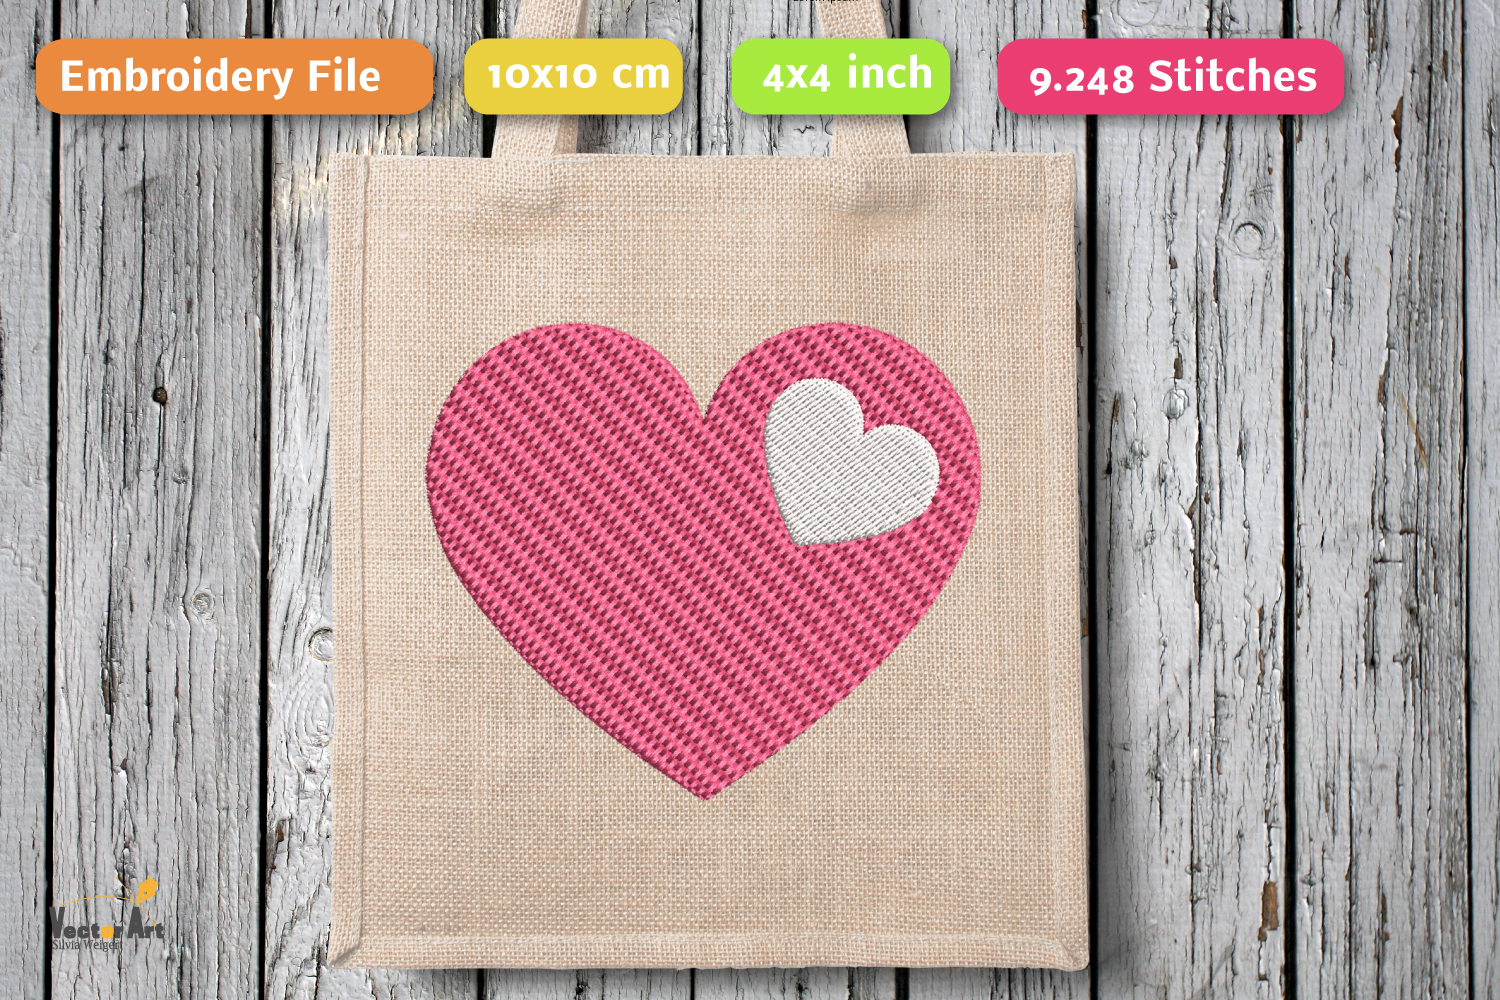 3 Hearts - Set - Embroidery File - 4x4 inch example image 4